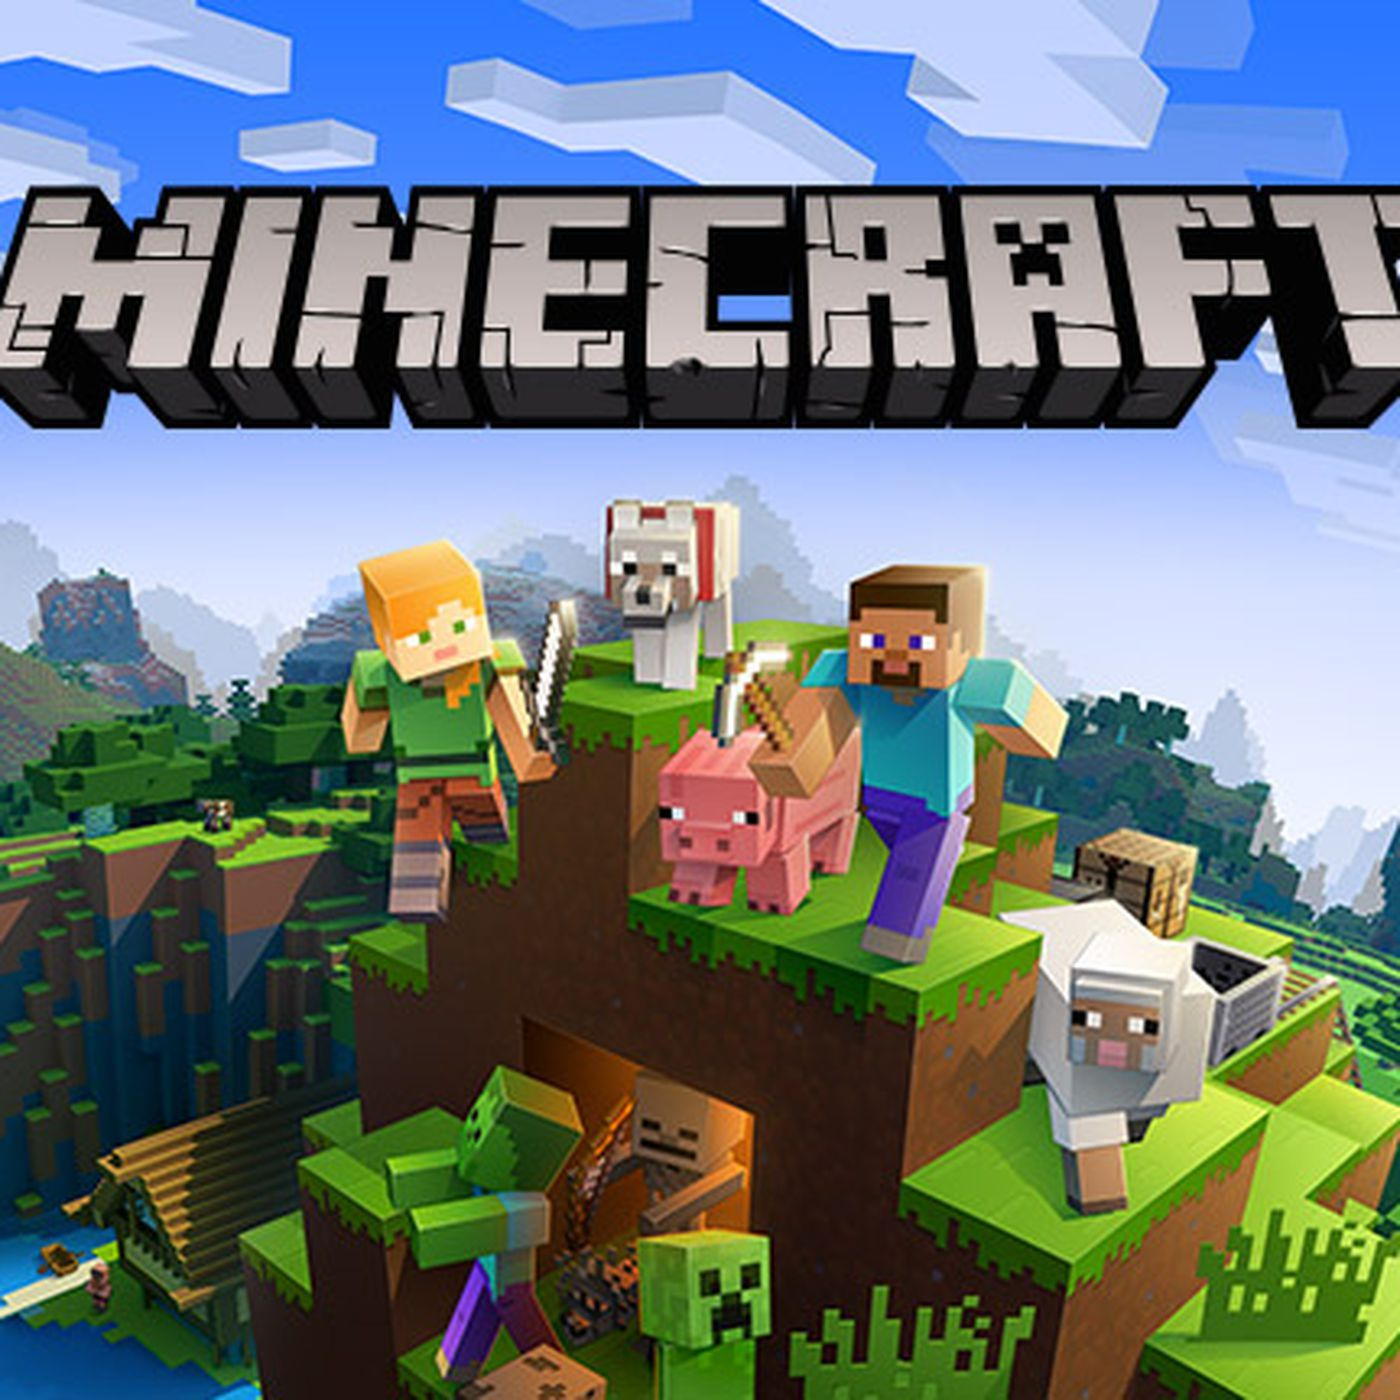 10 Reasons Why Minecraft Is Beneficial For Your Kids in